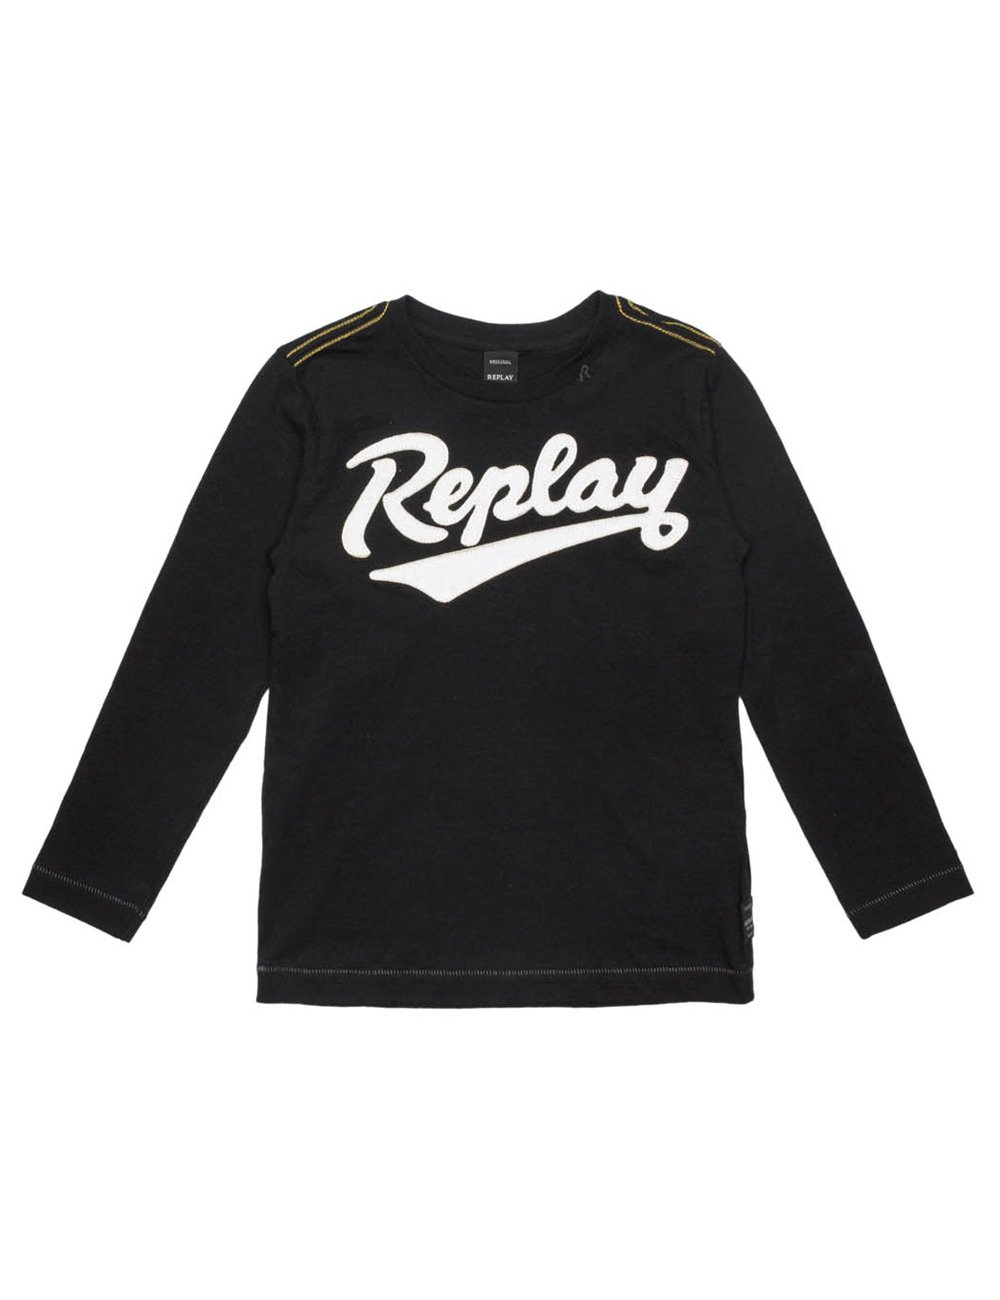 Replay Boy's Black Long-Sleeved T-Shirt With Print in Size 12 Years Black